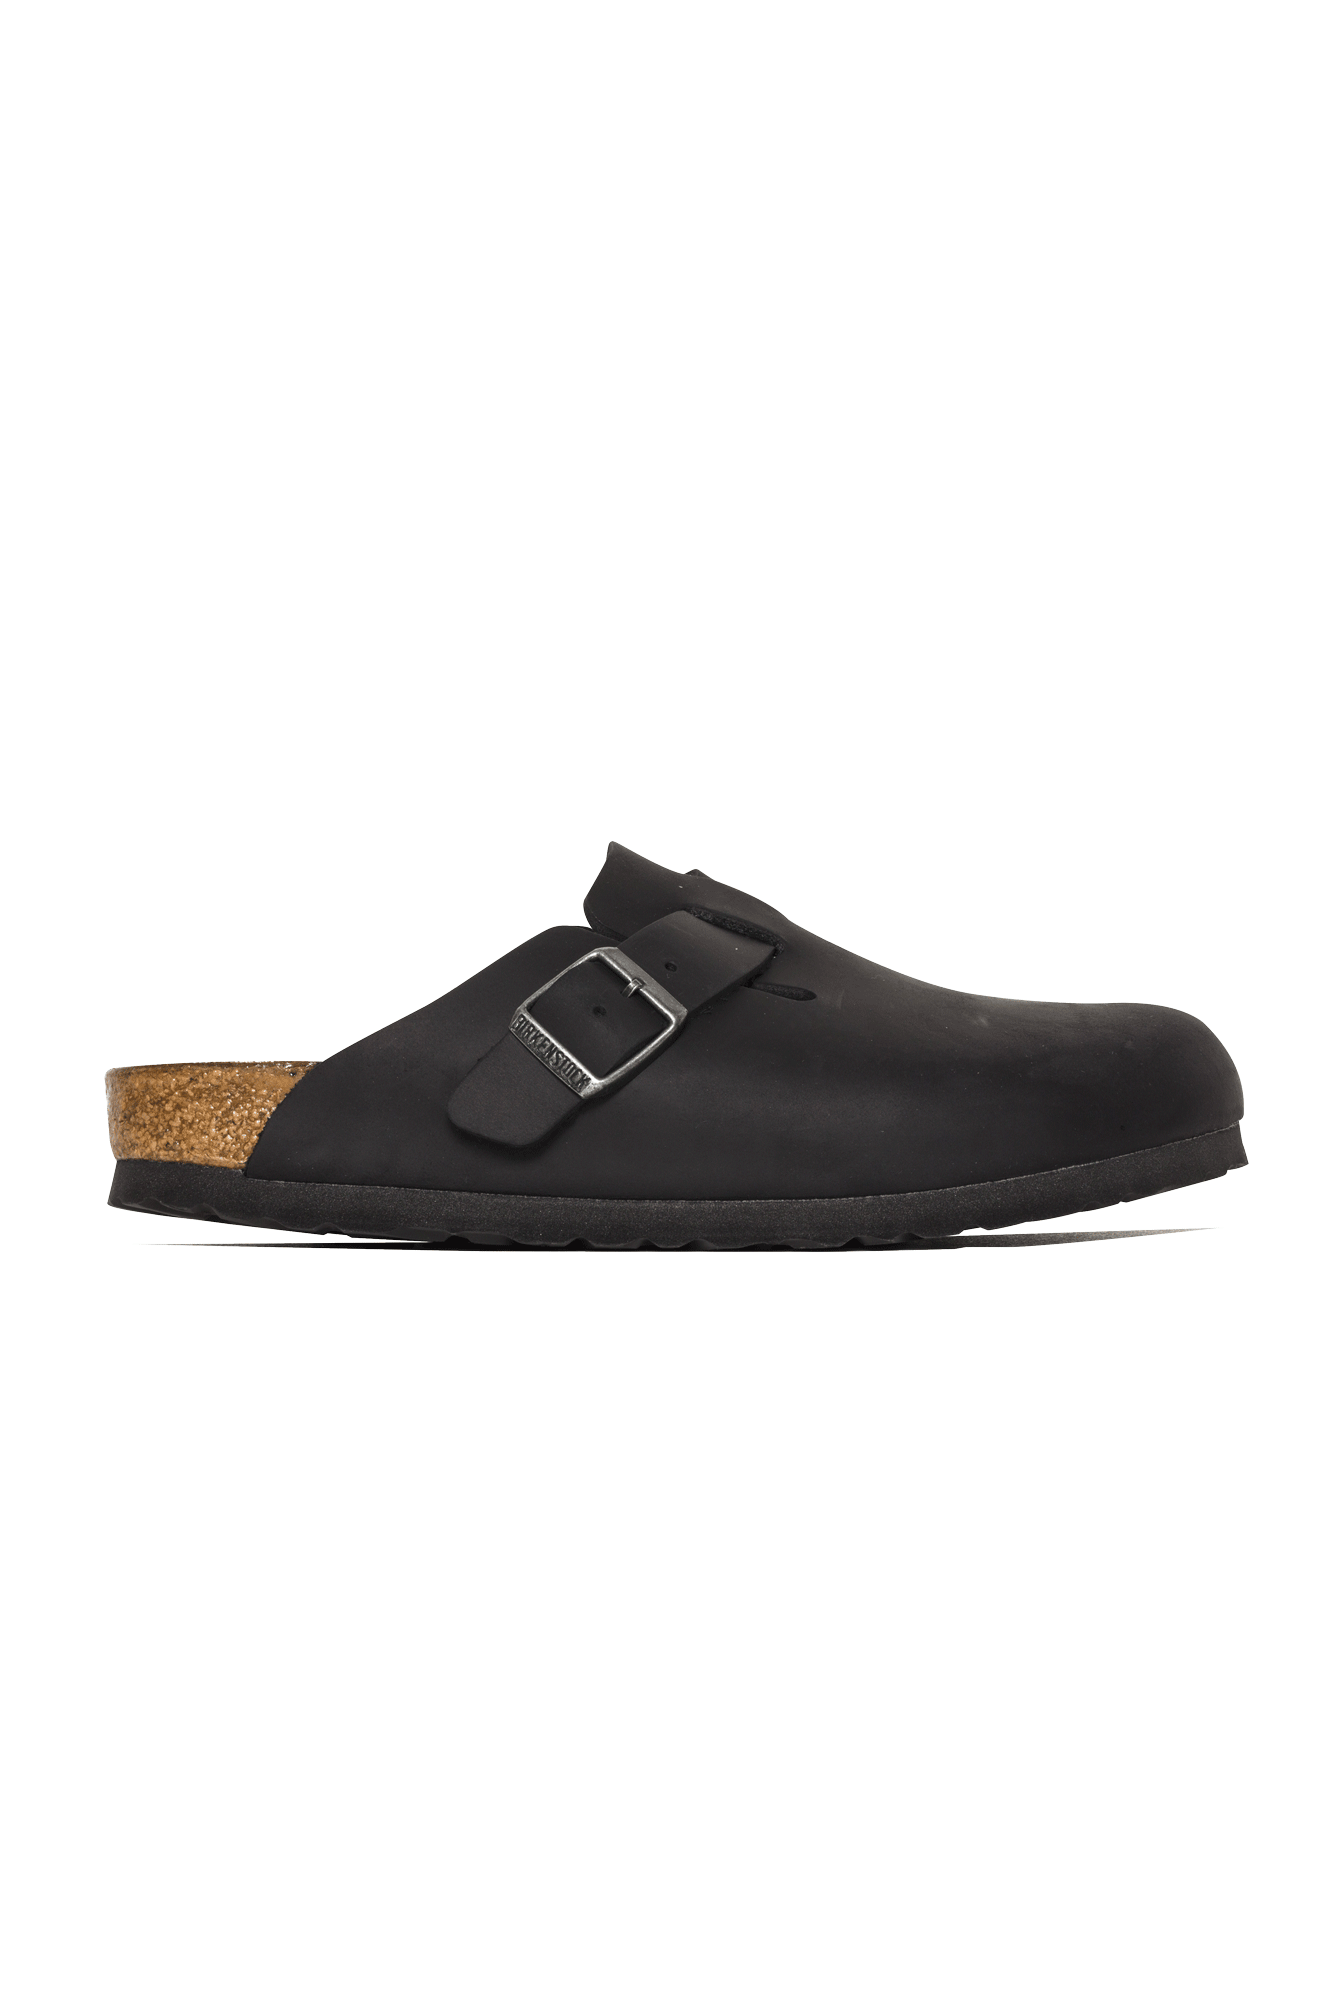 Birkenstock Sandali & Ciabatte Boston Nero Nero - One Block Down